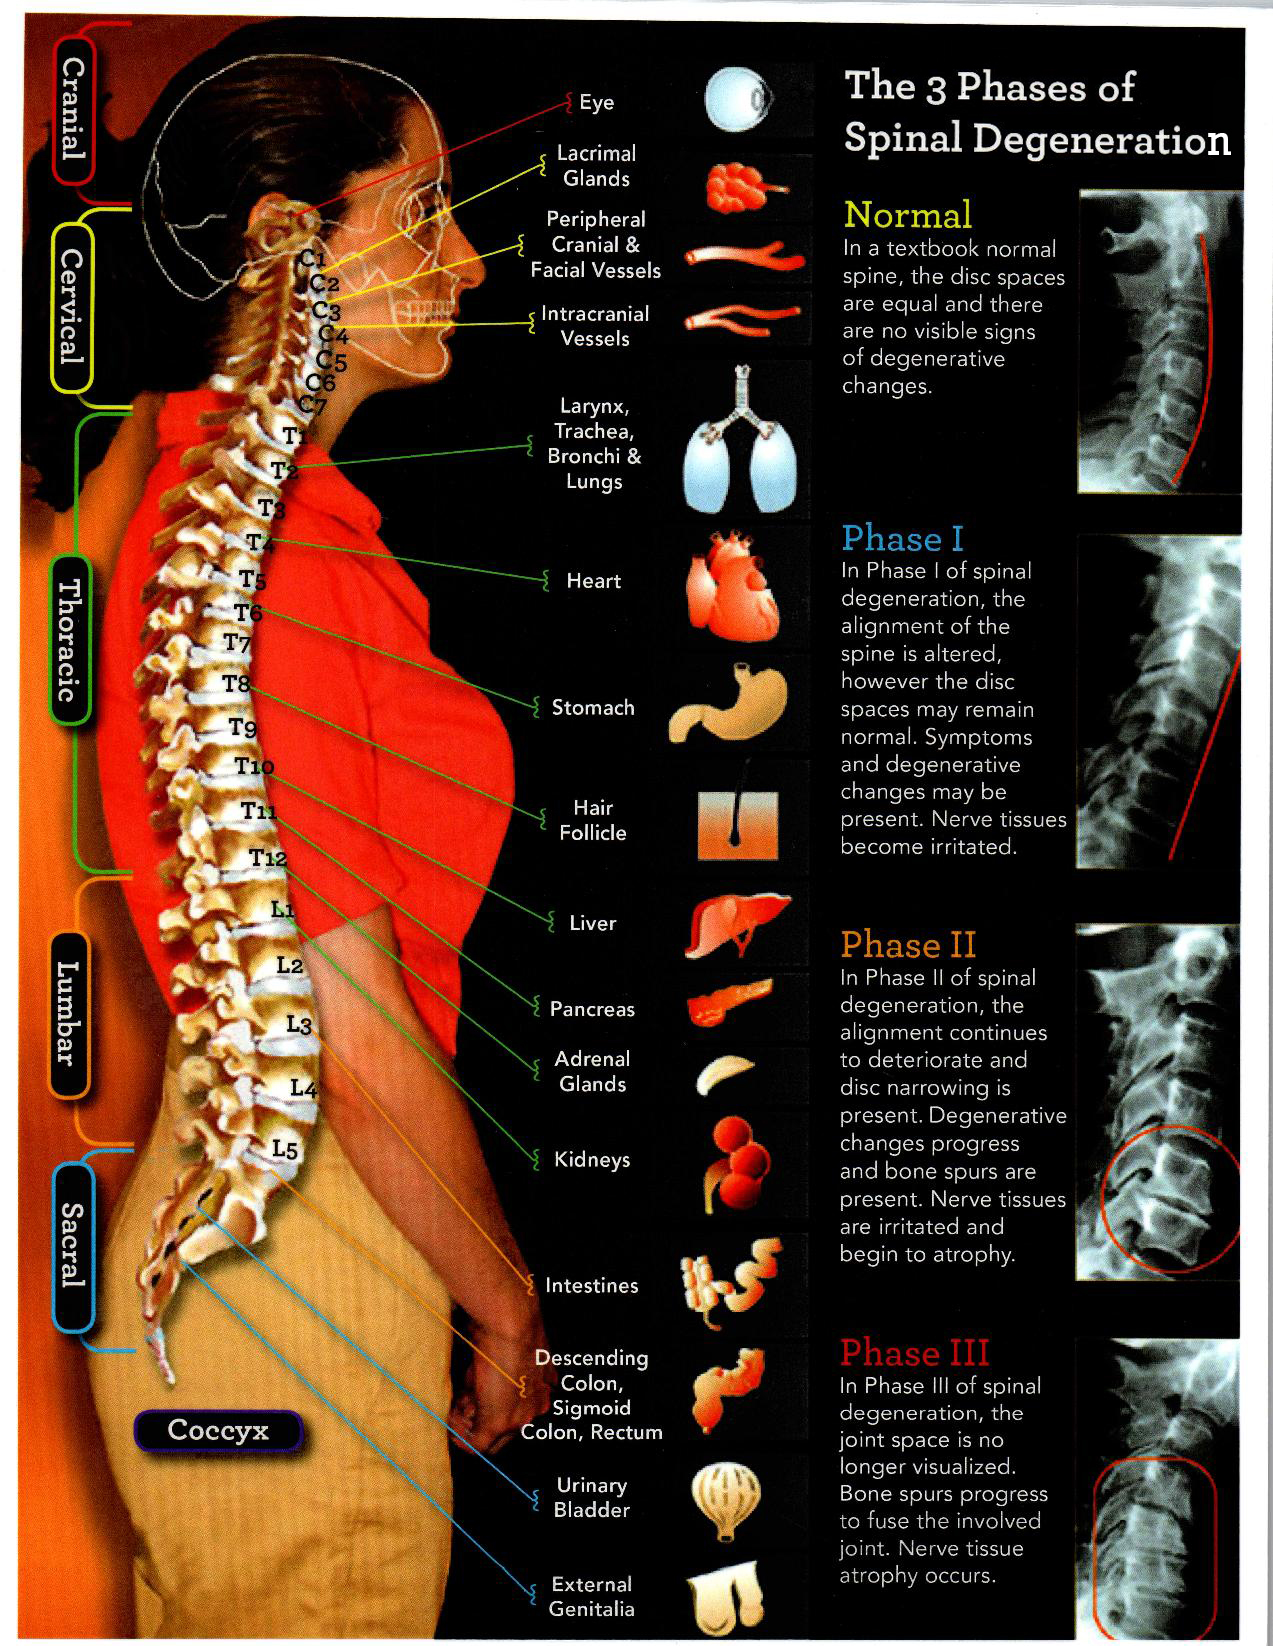 spinal degeneration